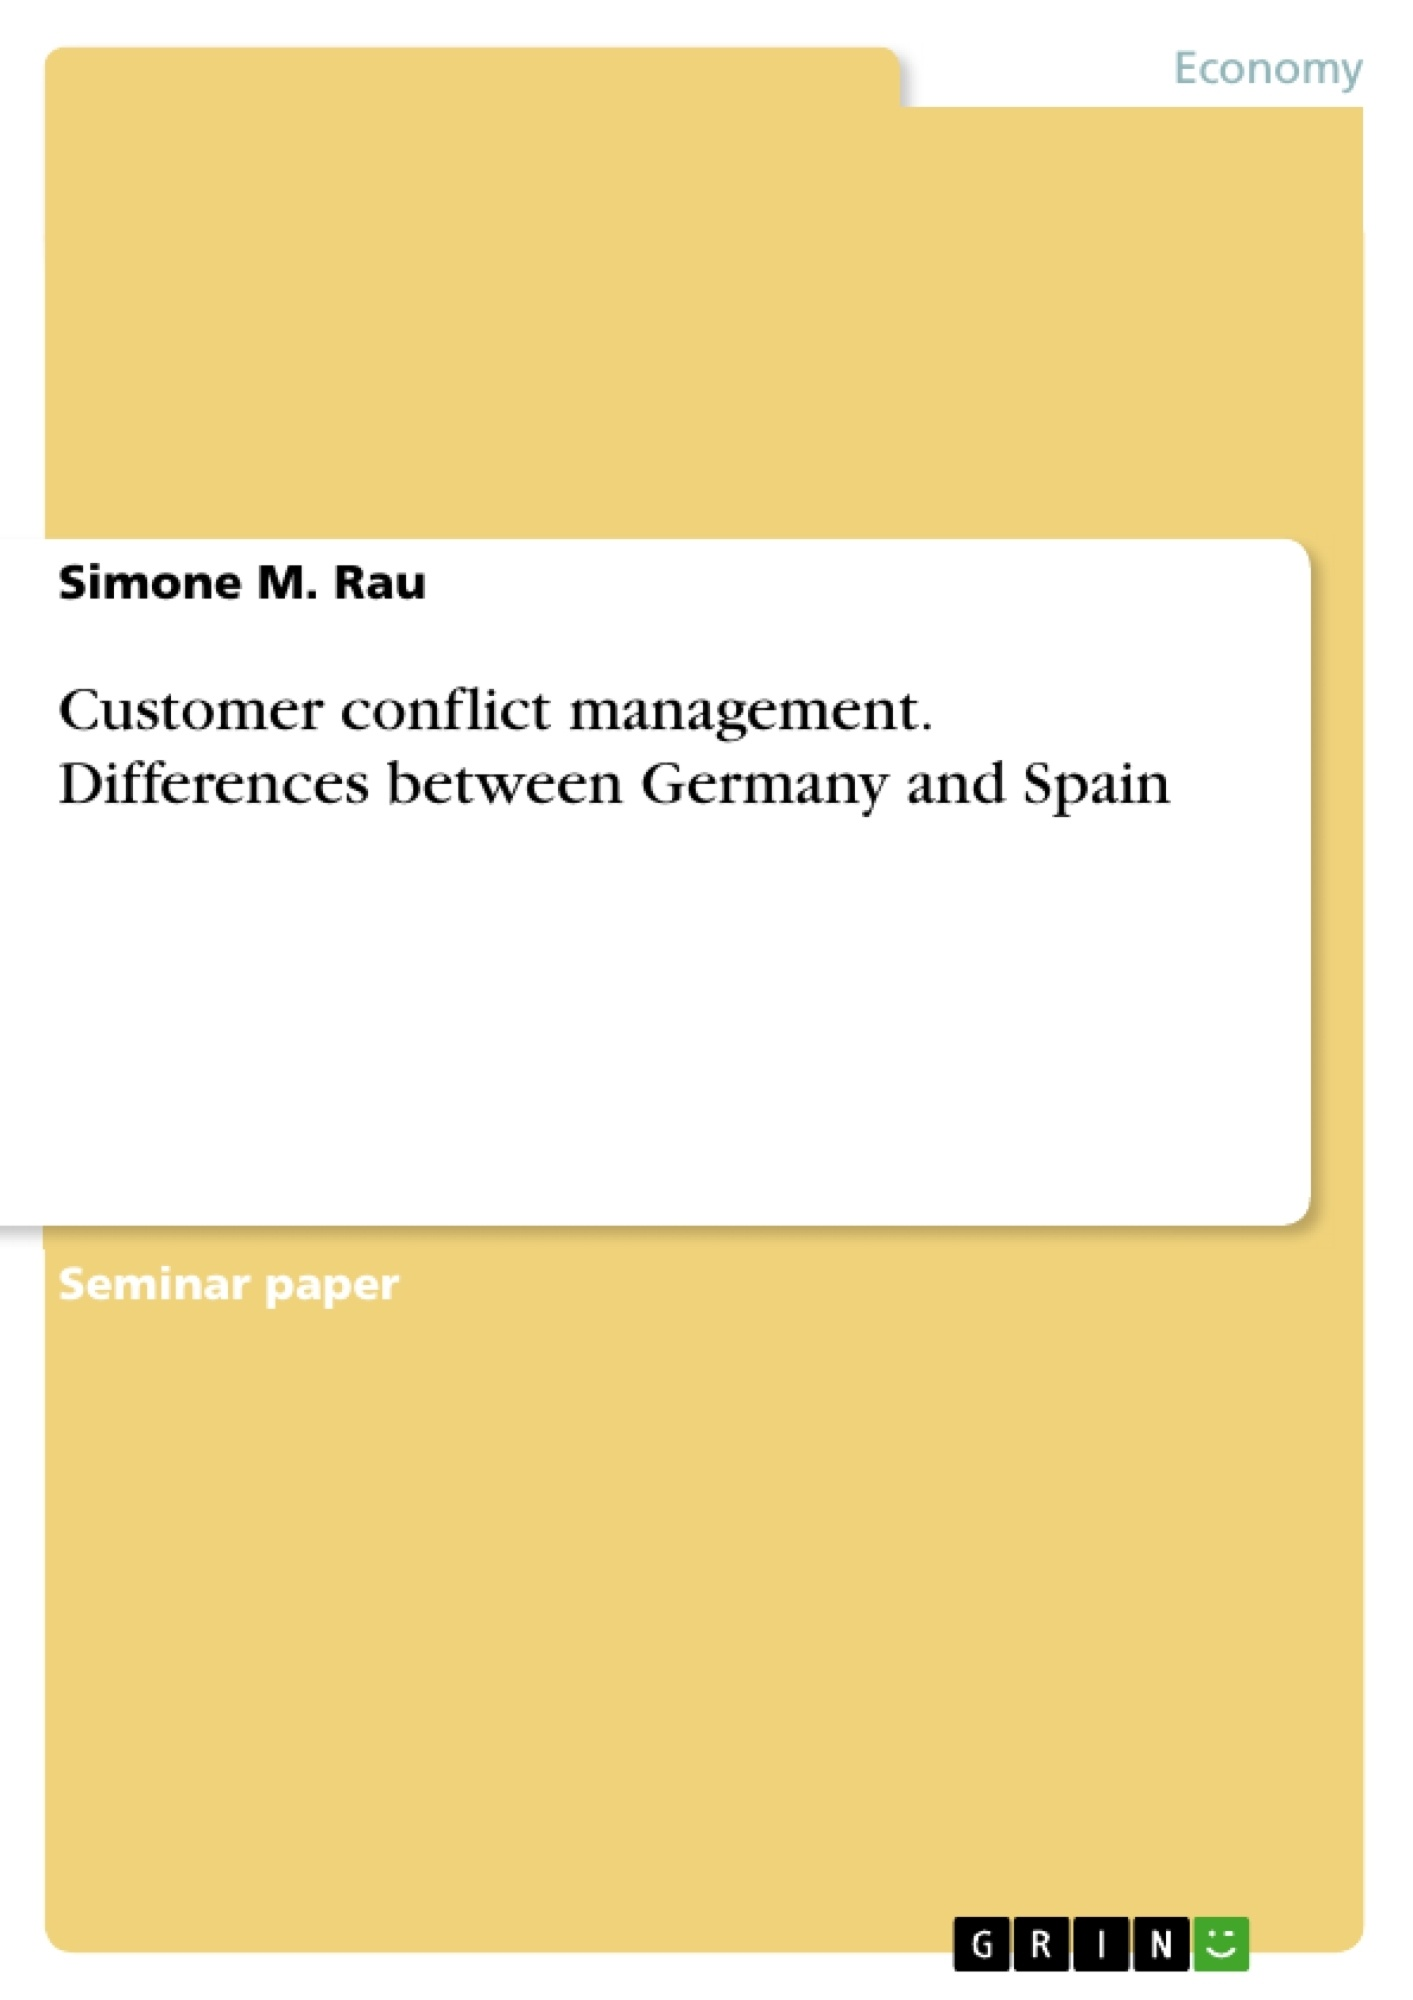 Title: Customer conflict management. Differences between Germany and Spain